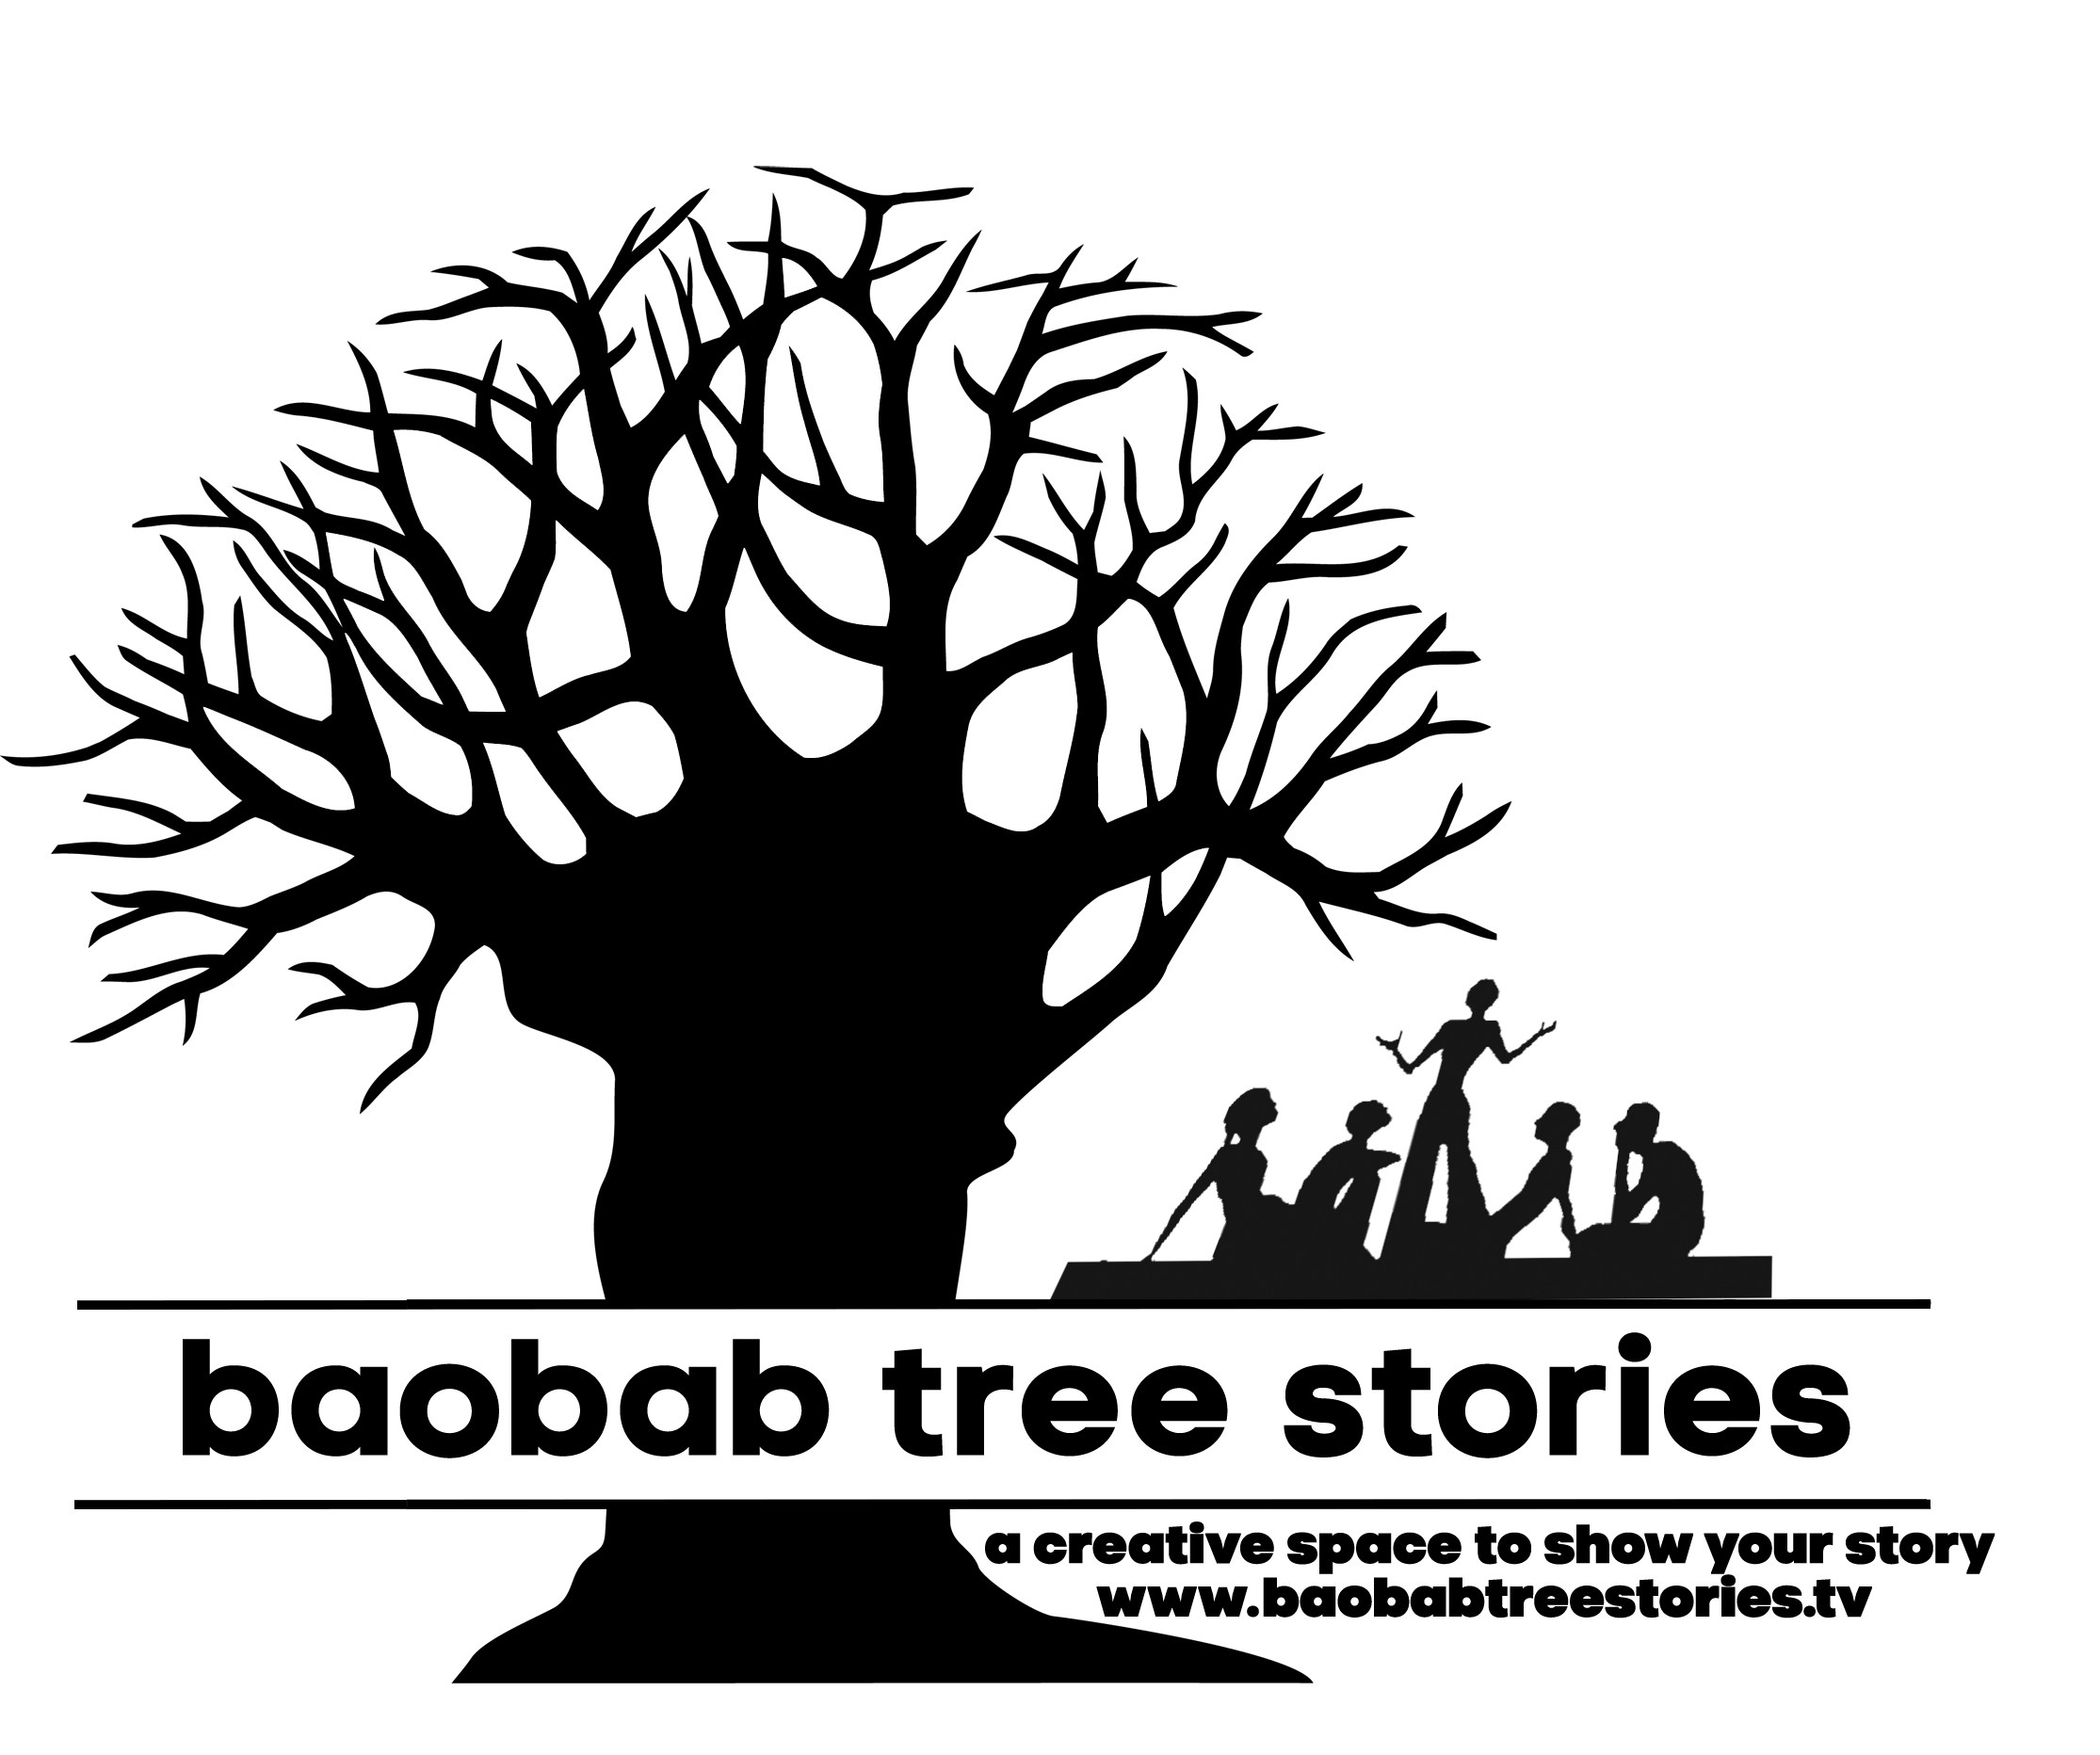 2230x1864 Baobab Tree Stories A Creative Space To Show Your Story.baobab